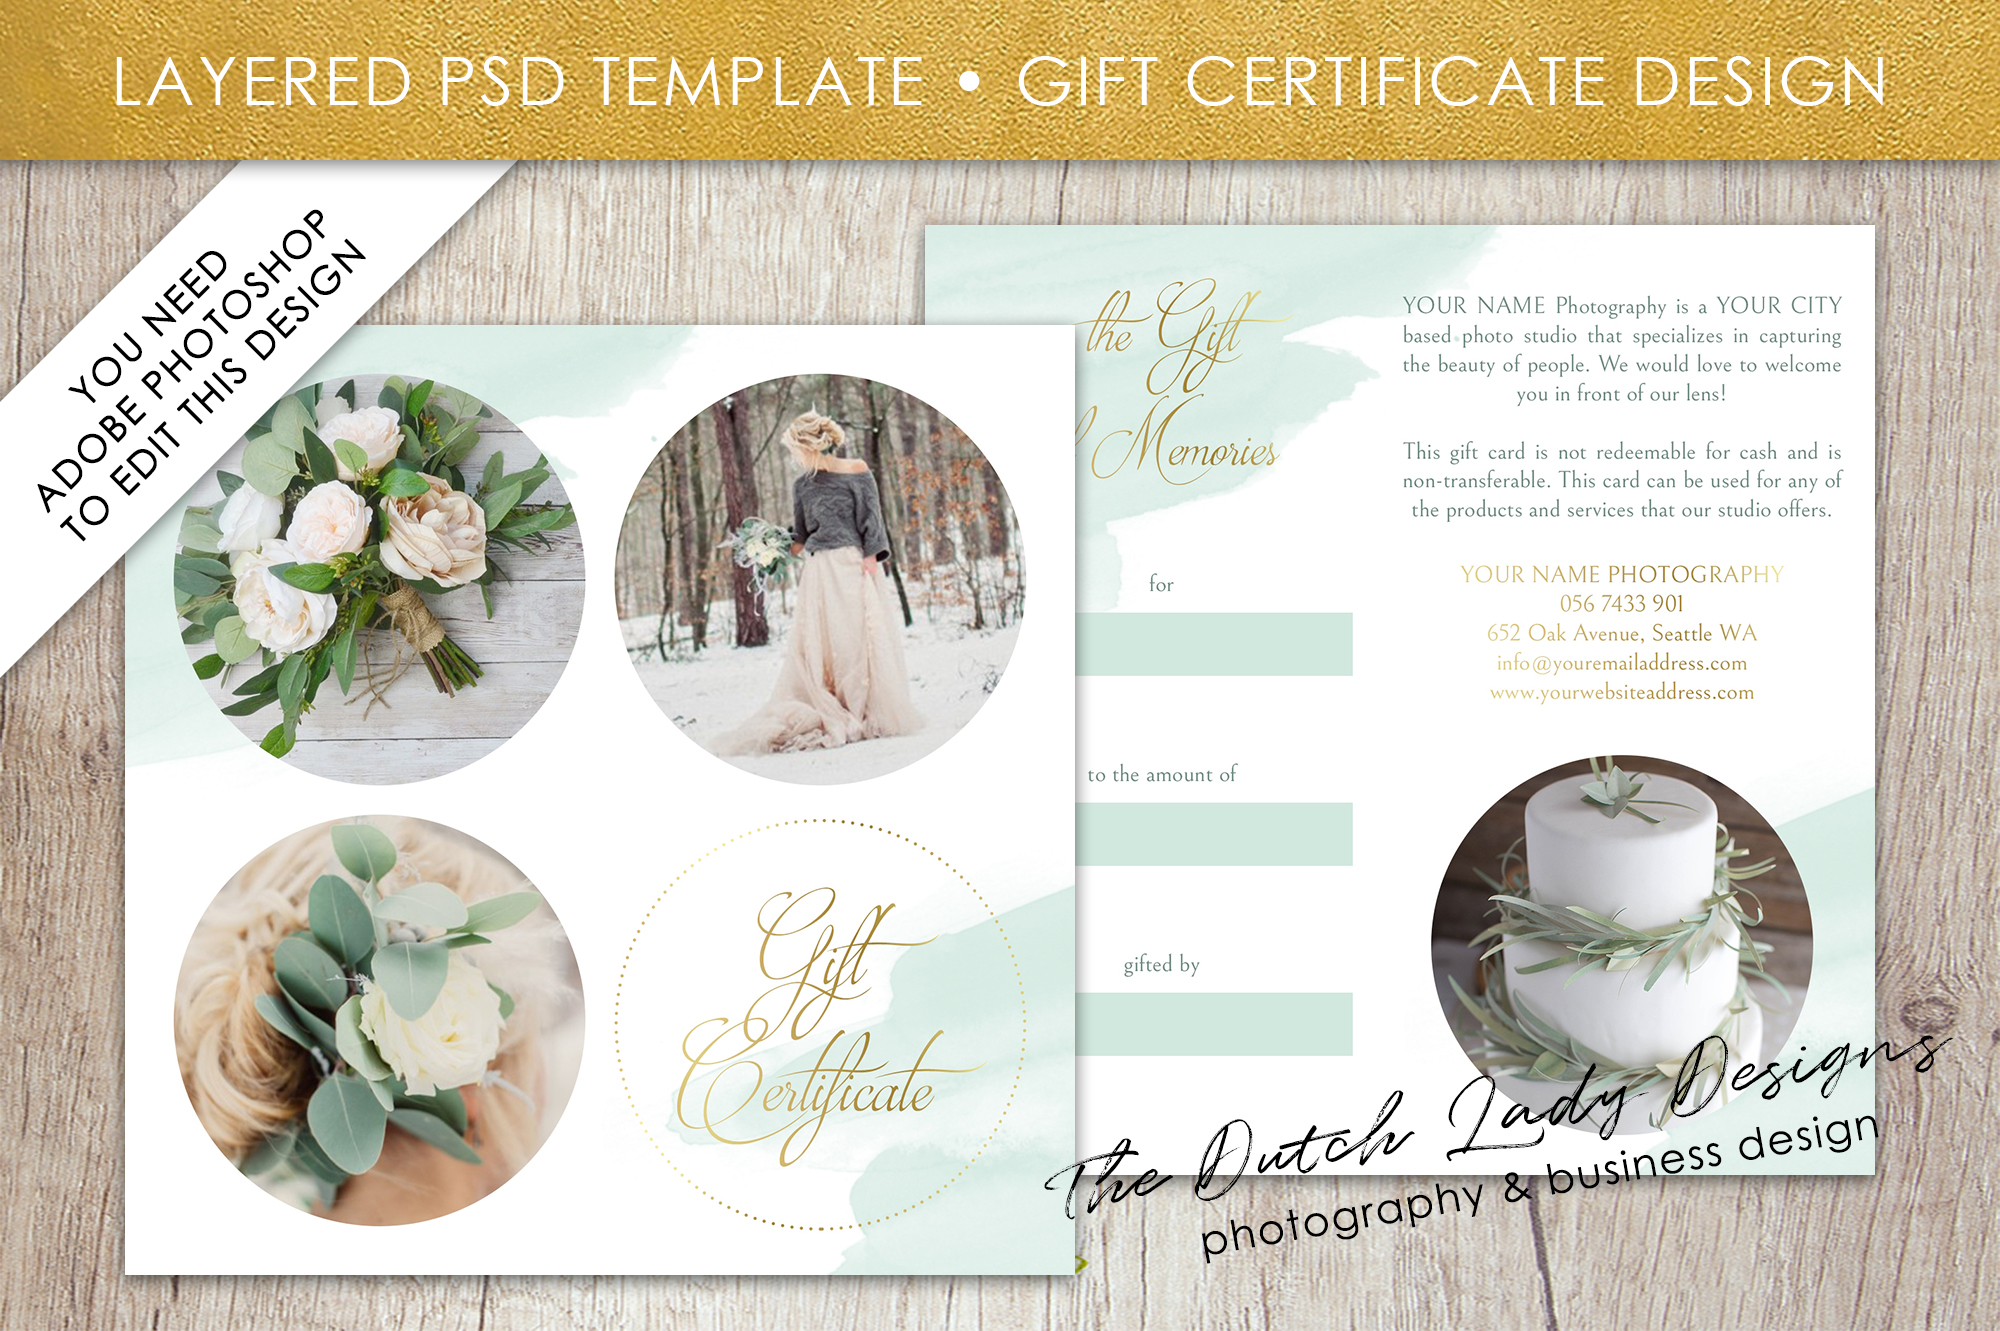 photography gift certificate template photo gift card layered psd files design 39. Black Bedroom Furniture Sets. Home Design Ideas